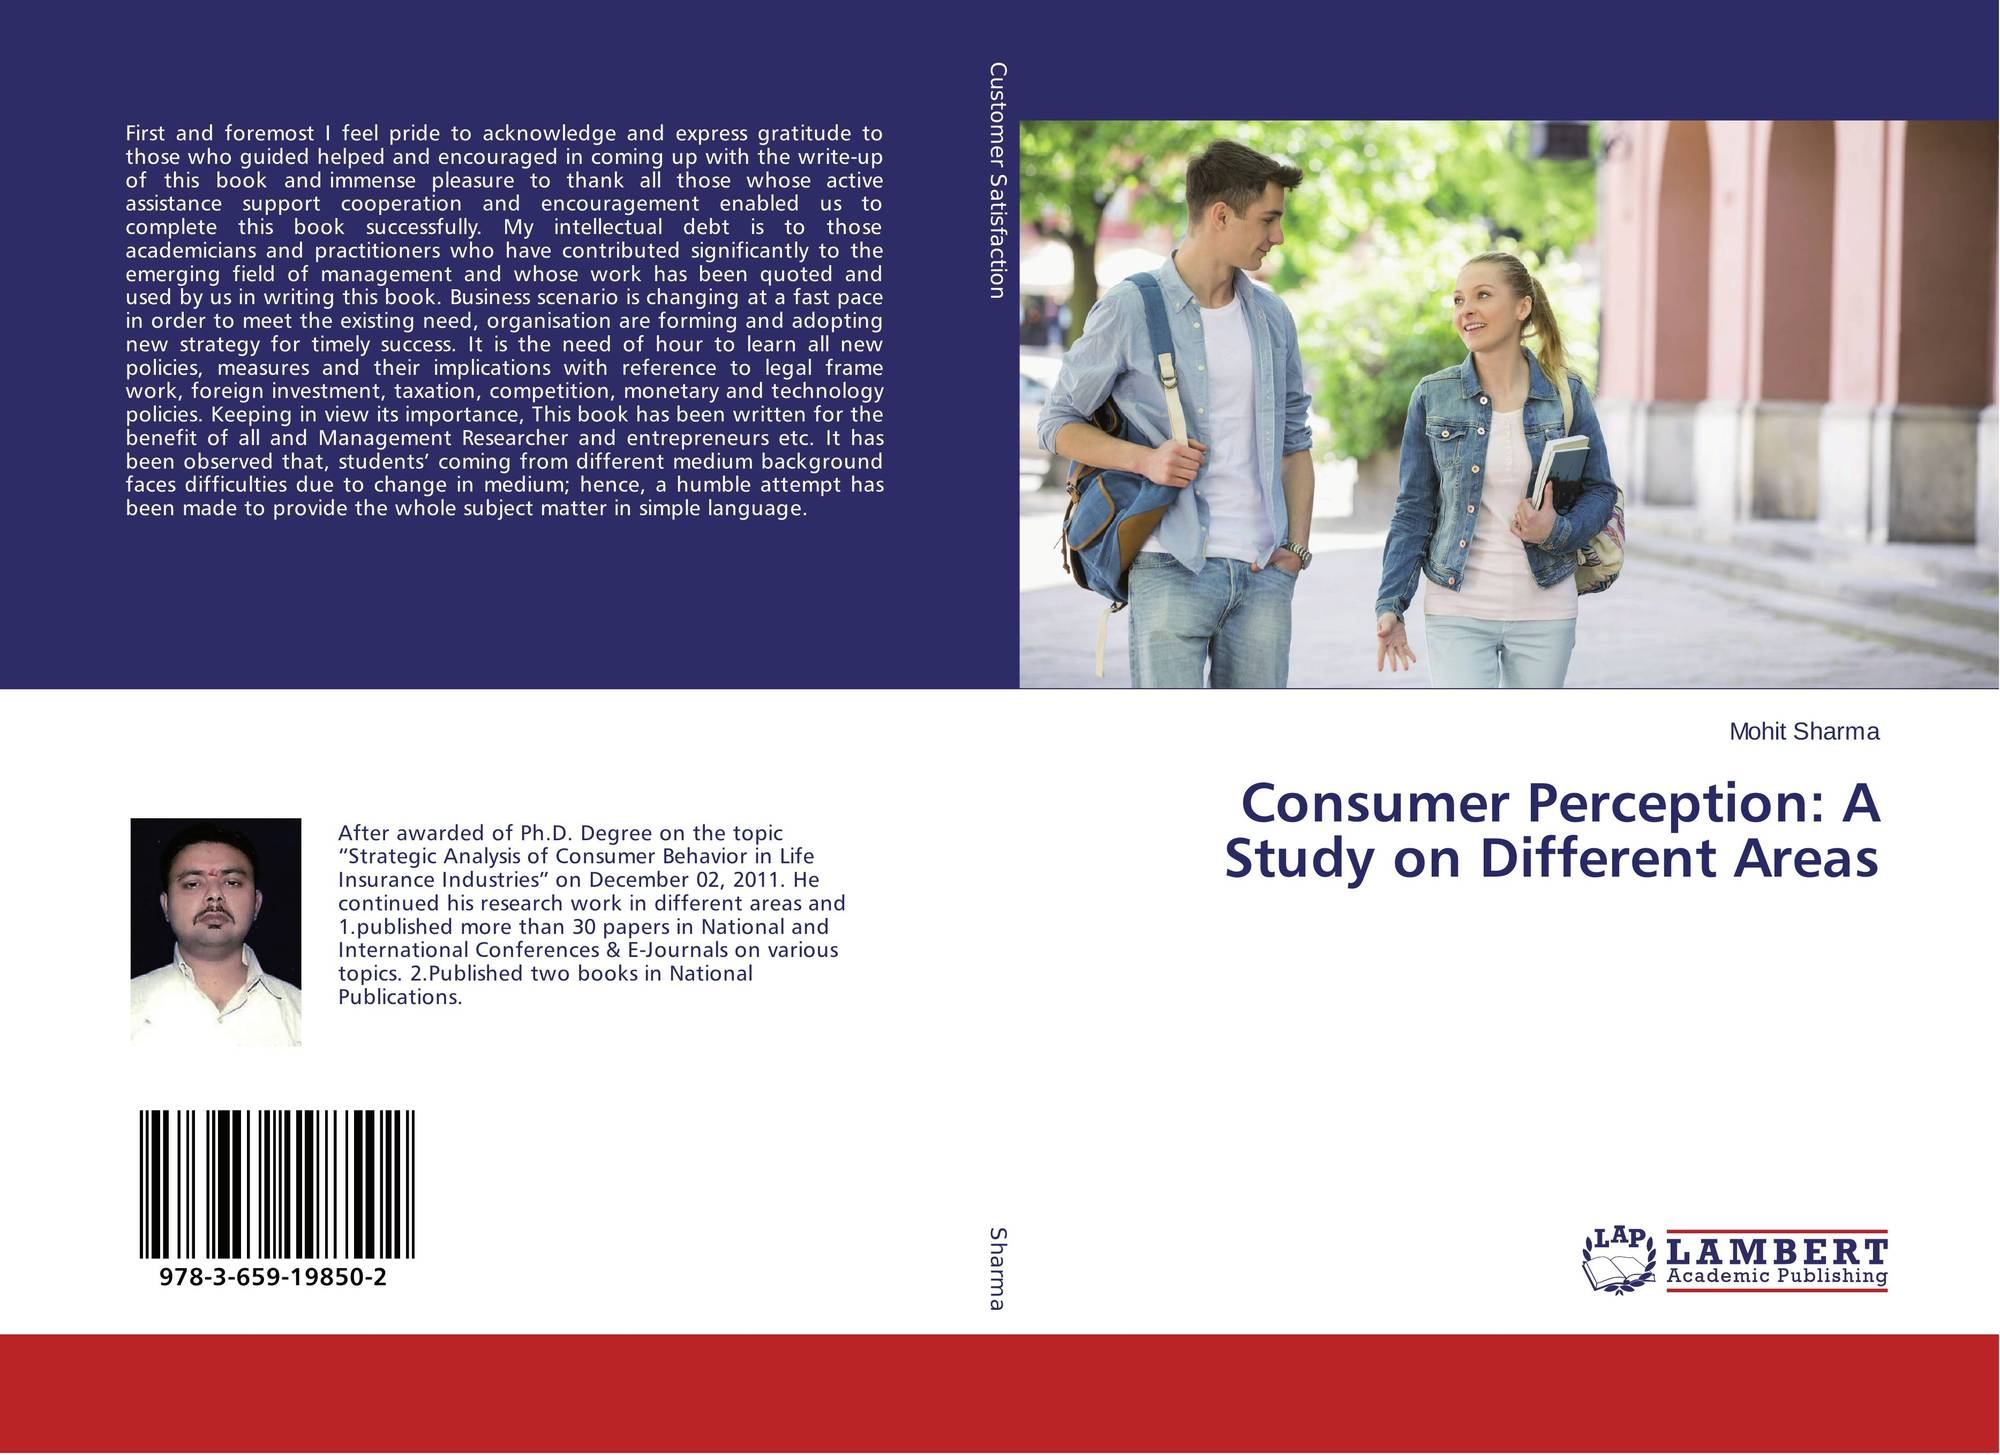 a study on the consumer perception